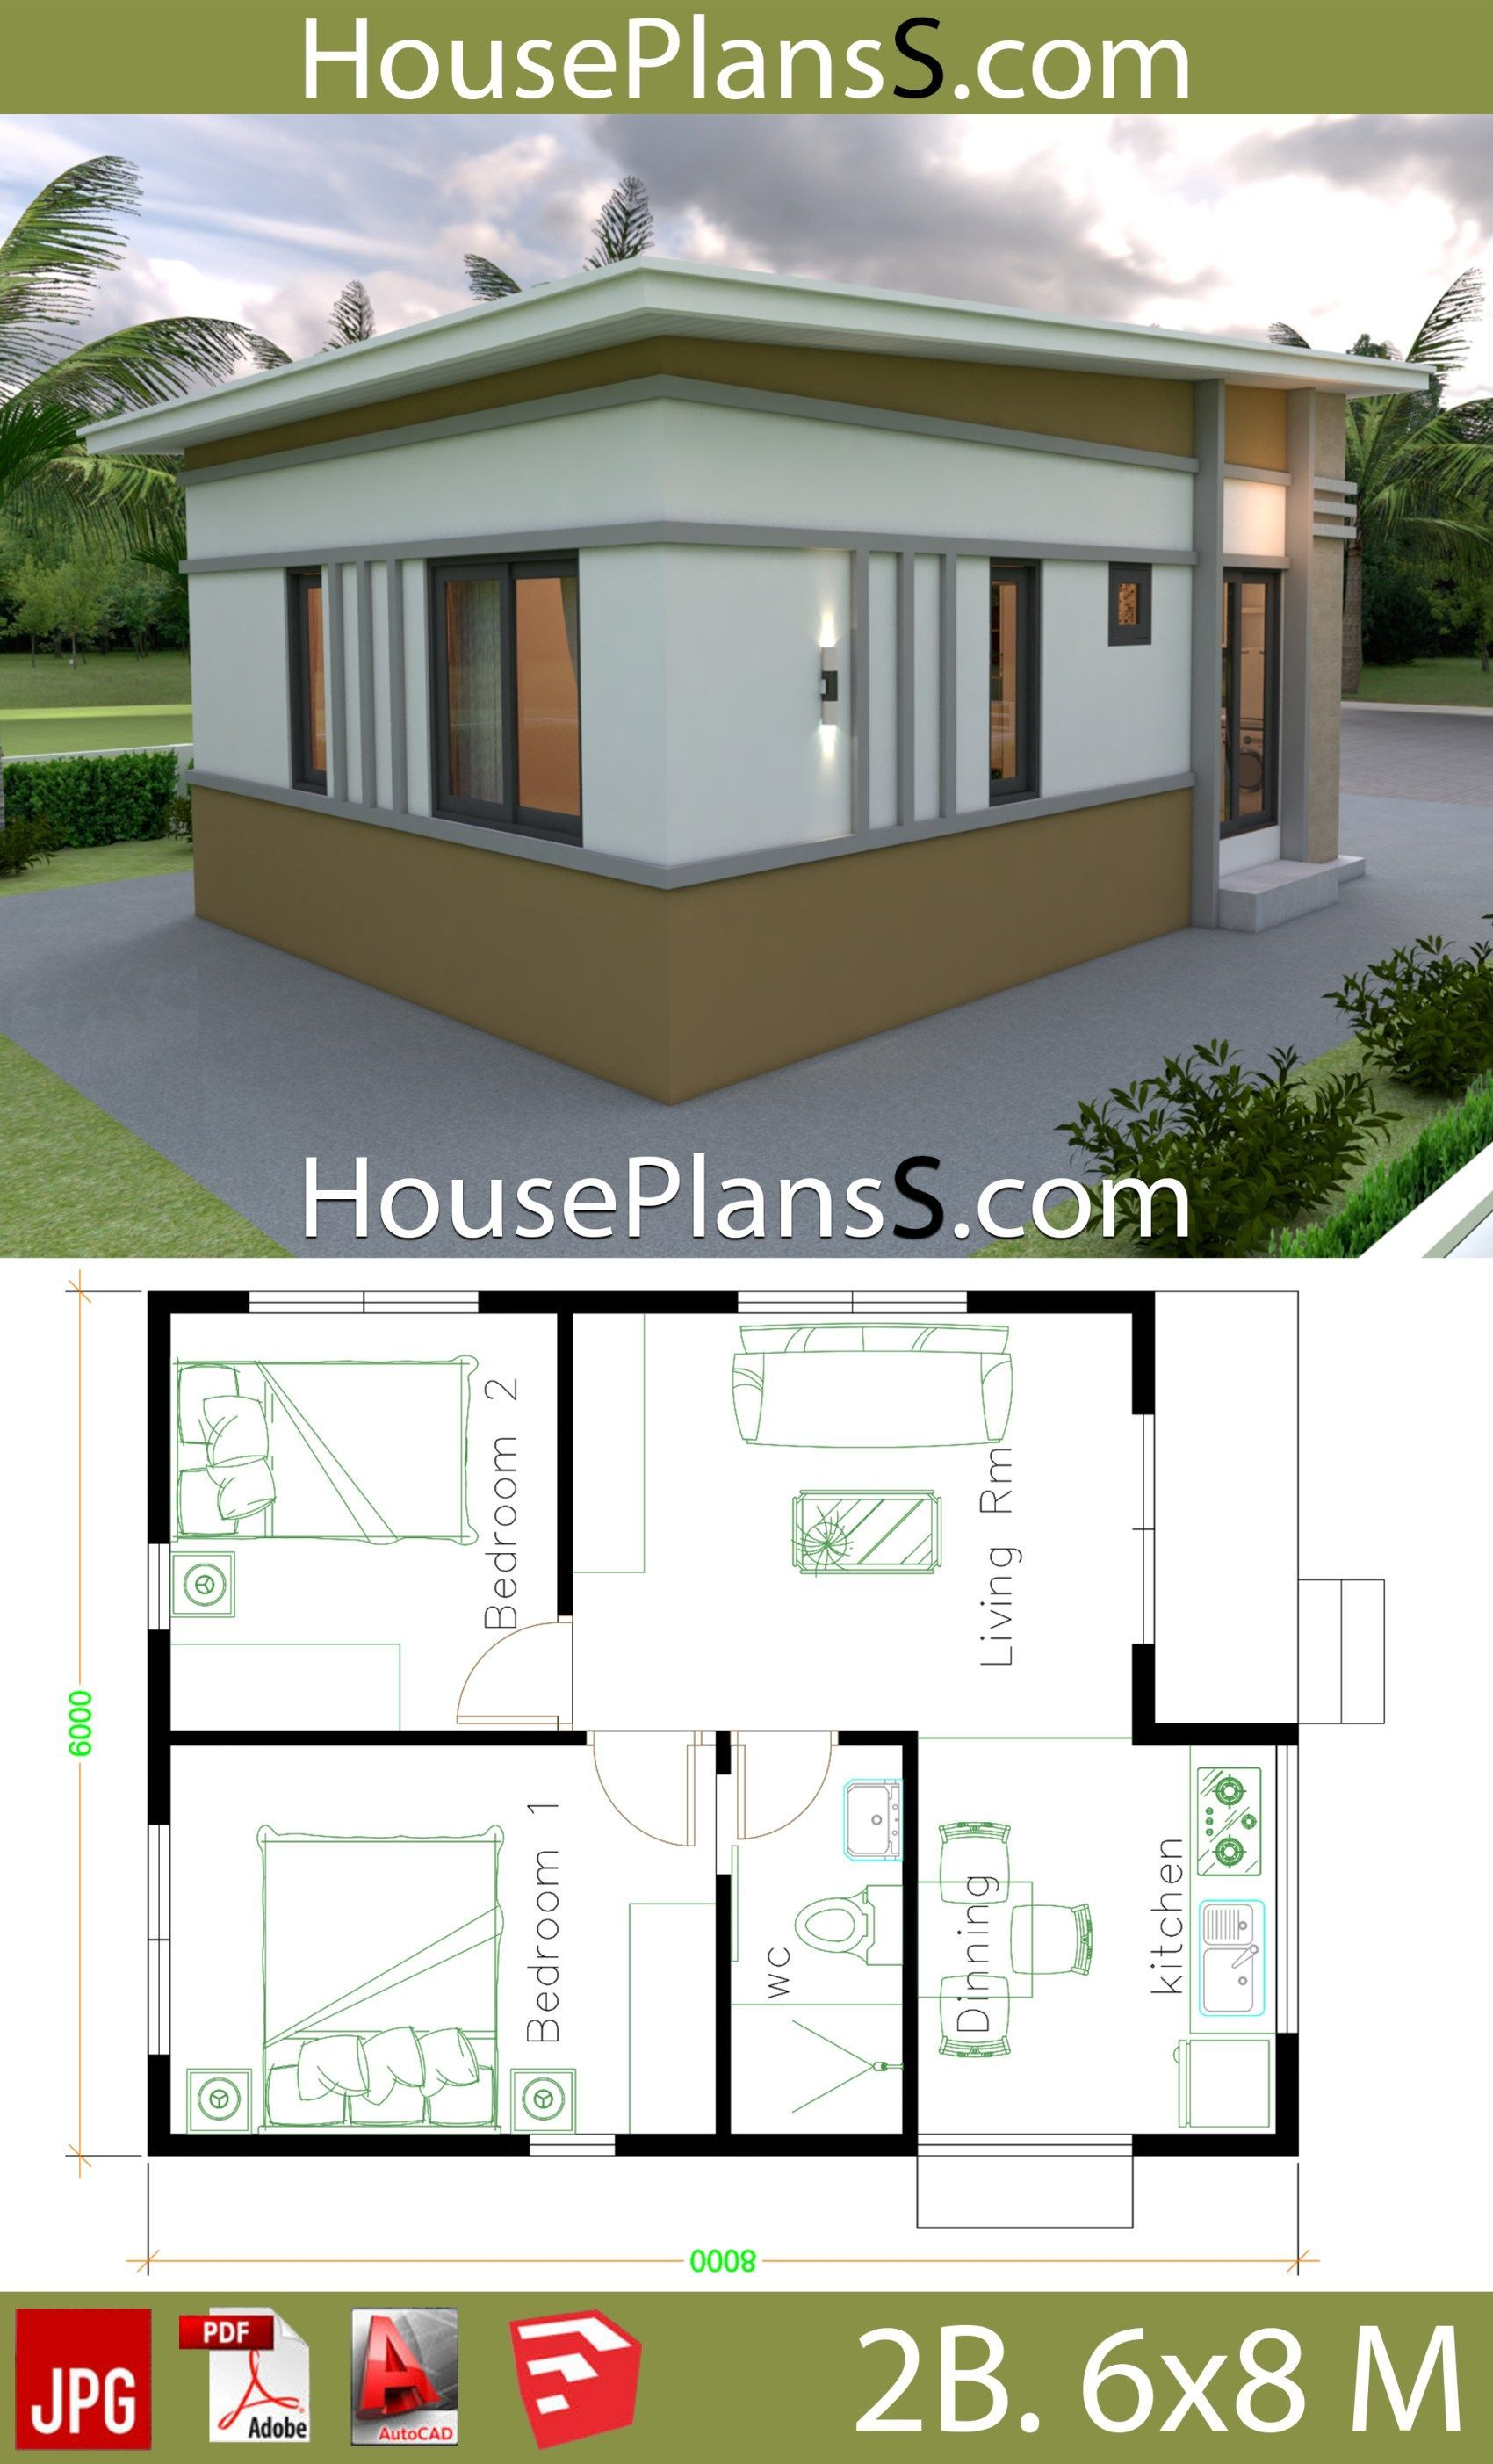 Small House Design Plans 6x8 With 2 Bedrooms In 2019 Small In 2020 Small House Design Plans House Design Pictures House Plans